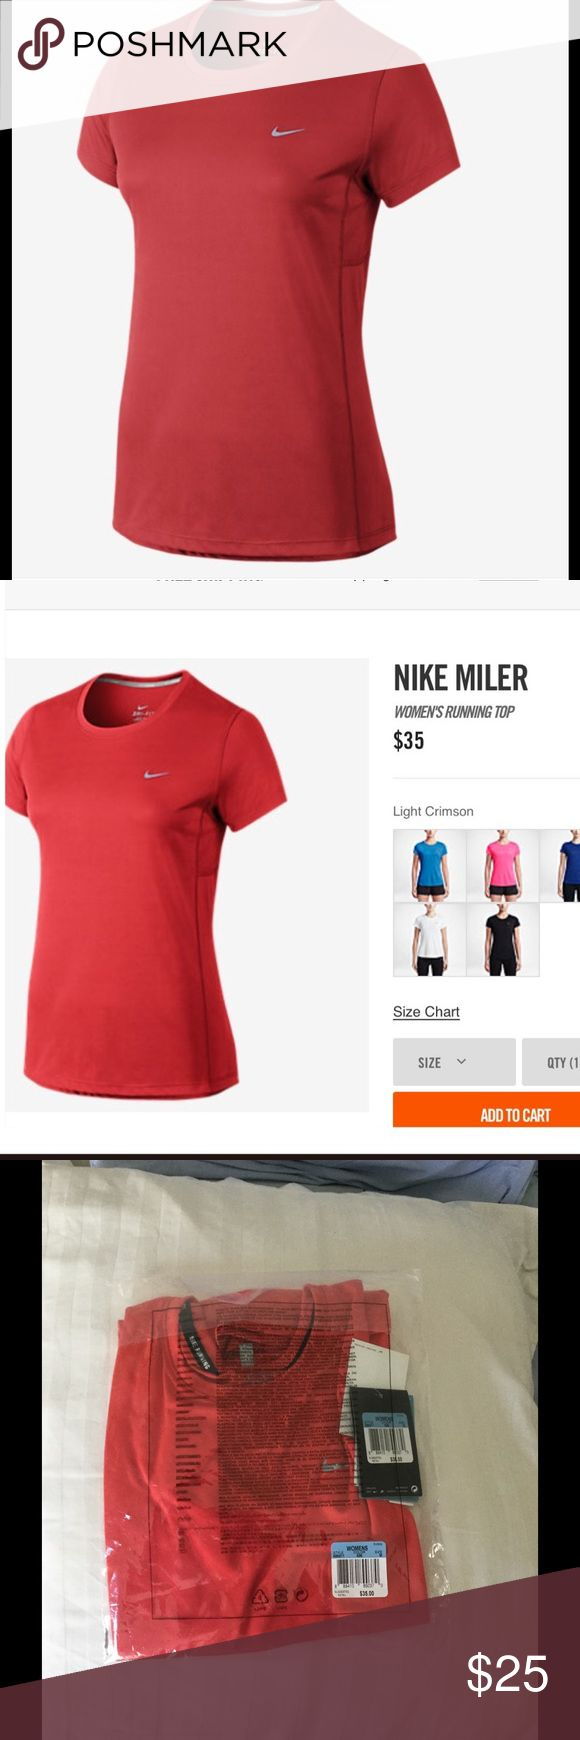 Nike Women's Miler Top Nike women's running top. Stay cool technology. Orange-ish red color. MSRP $35 Nike Tops Tees - Short Sleeve